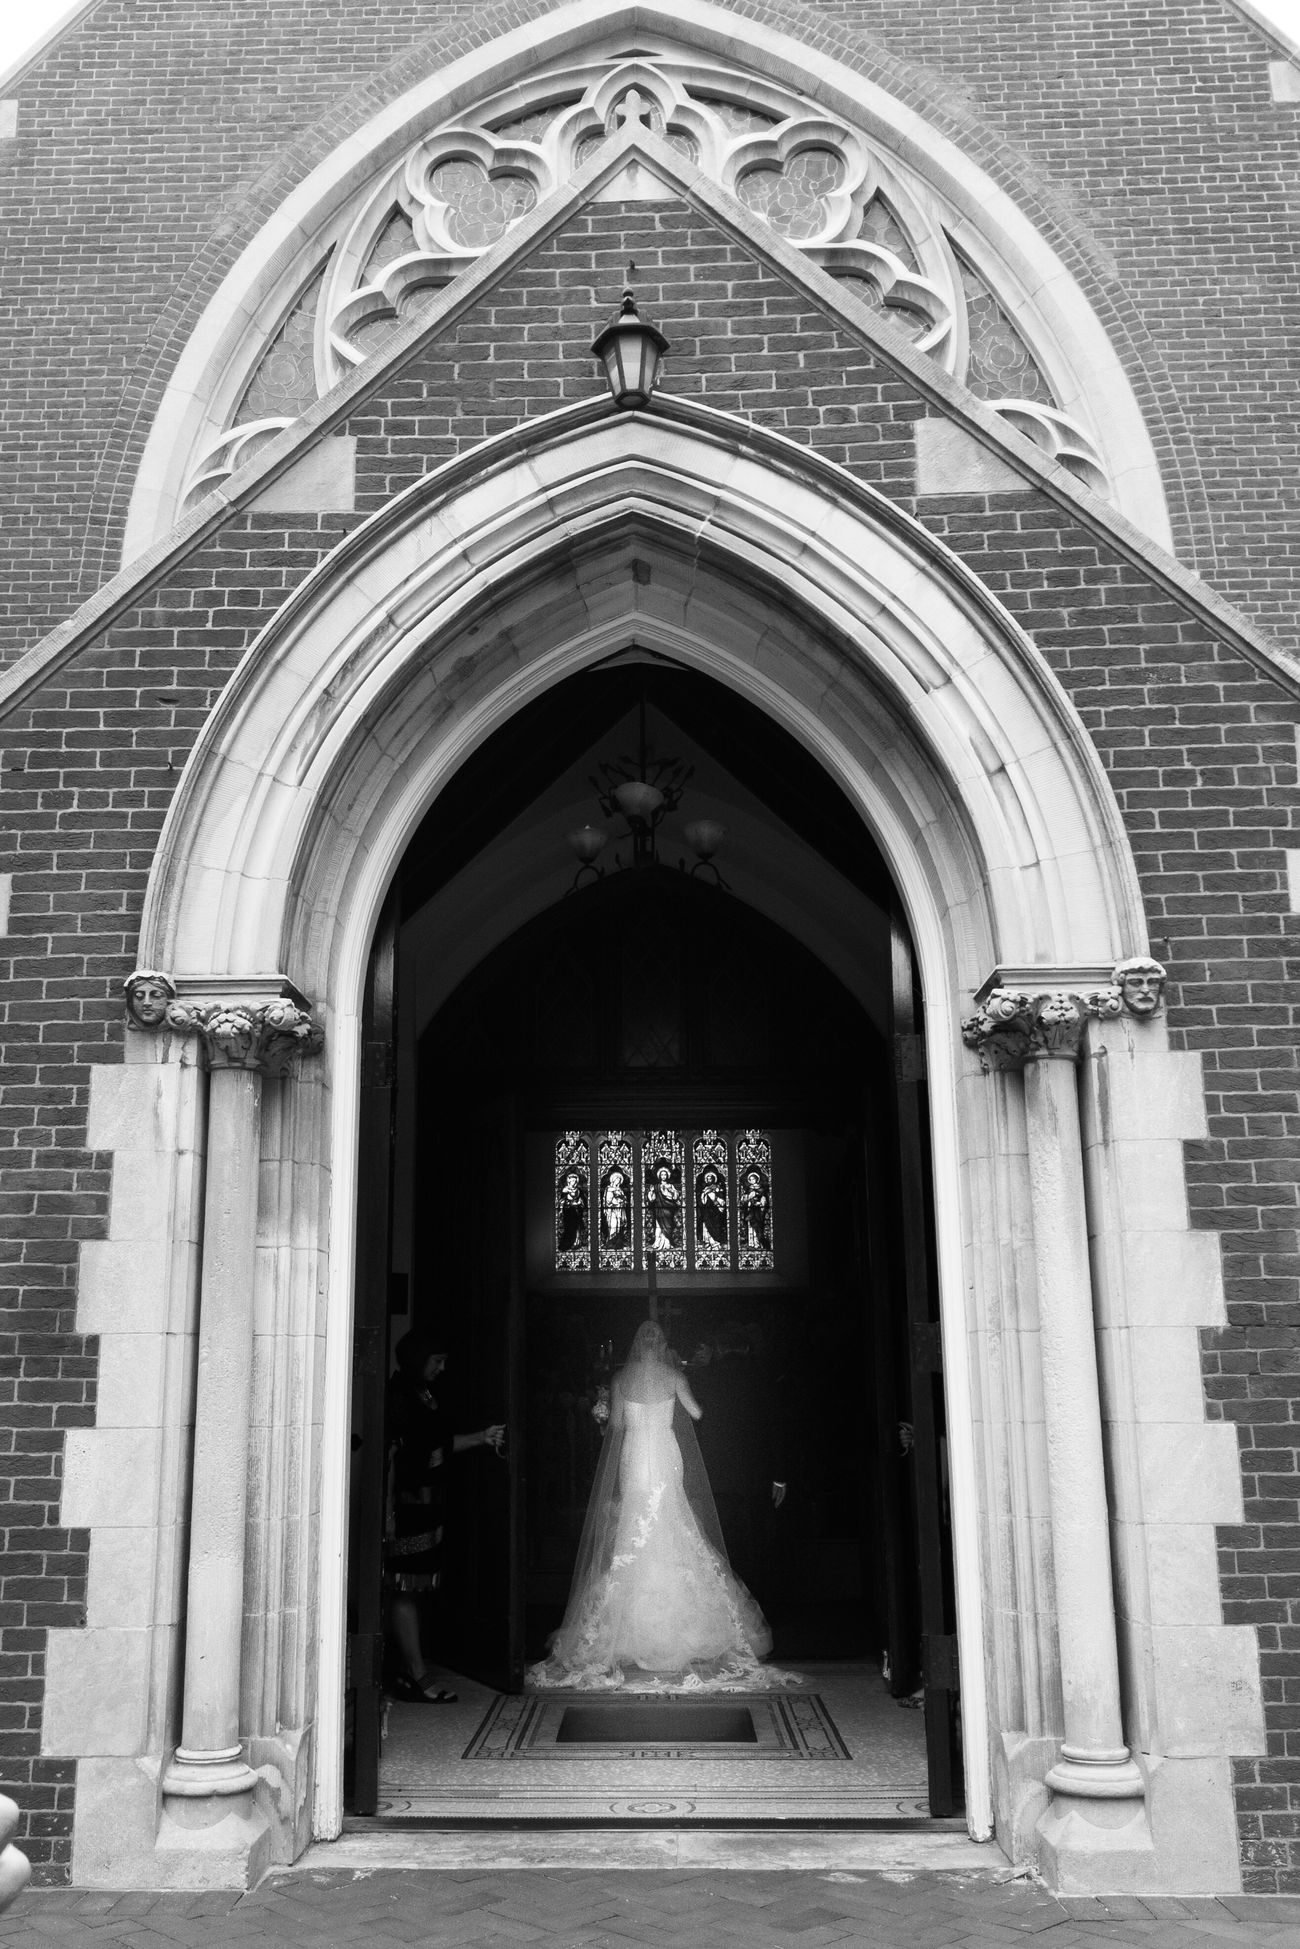 Architecture Arch Building Exterior Door Entrance Façade Steps Outdoors Entryway Place Of Worship Arched Bride Wedding Black & White Wedding Photography Wedding Day Wedding Dress Blackandwhite Photography Church Chapel Catholic Catholic Church Brick Brick Wall